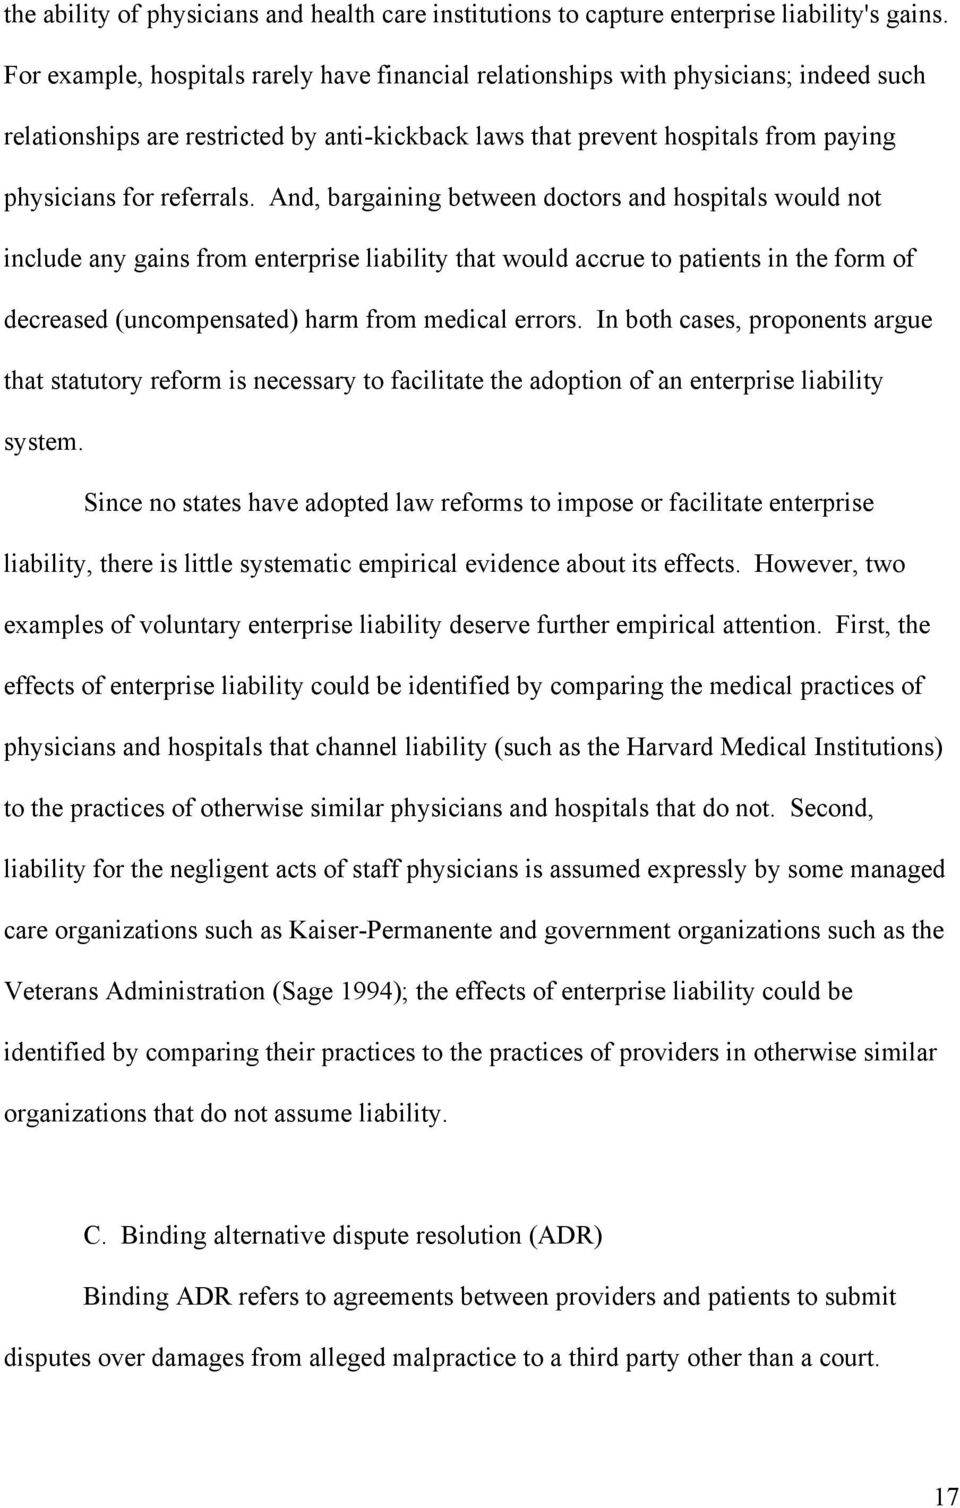 And, bargaining between doctors and hospitals would not include any gains from enterprise liability that would accrue to patients in the form of decreased (uncompensated) harm from medical errors.